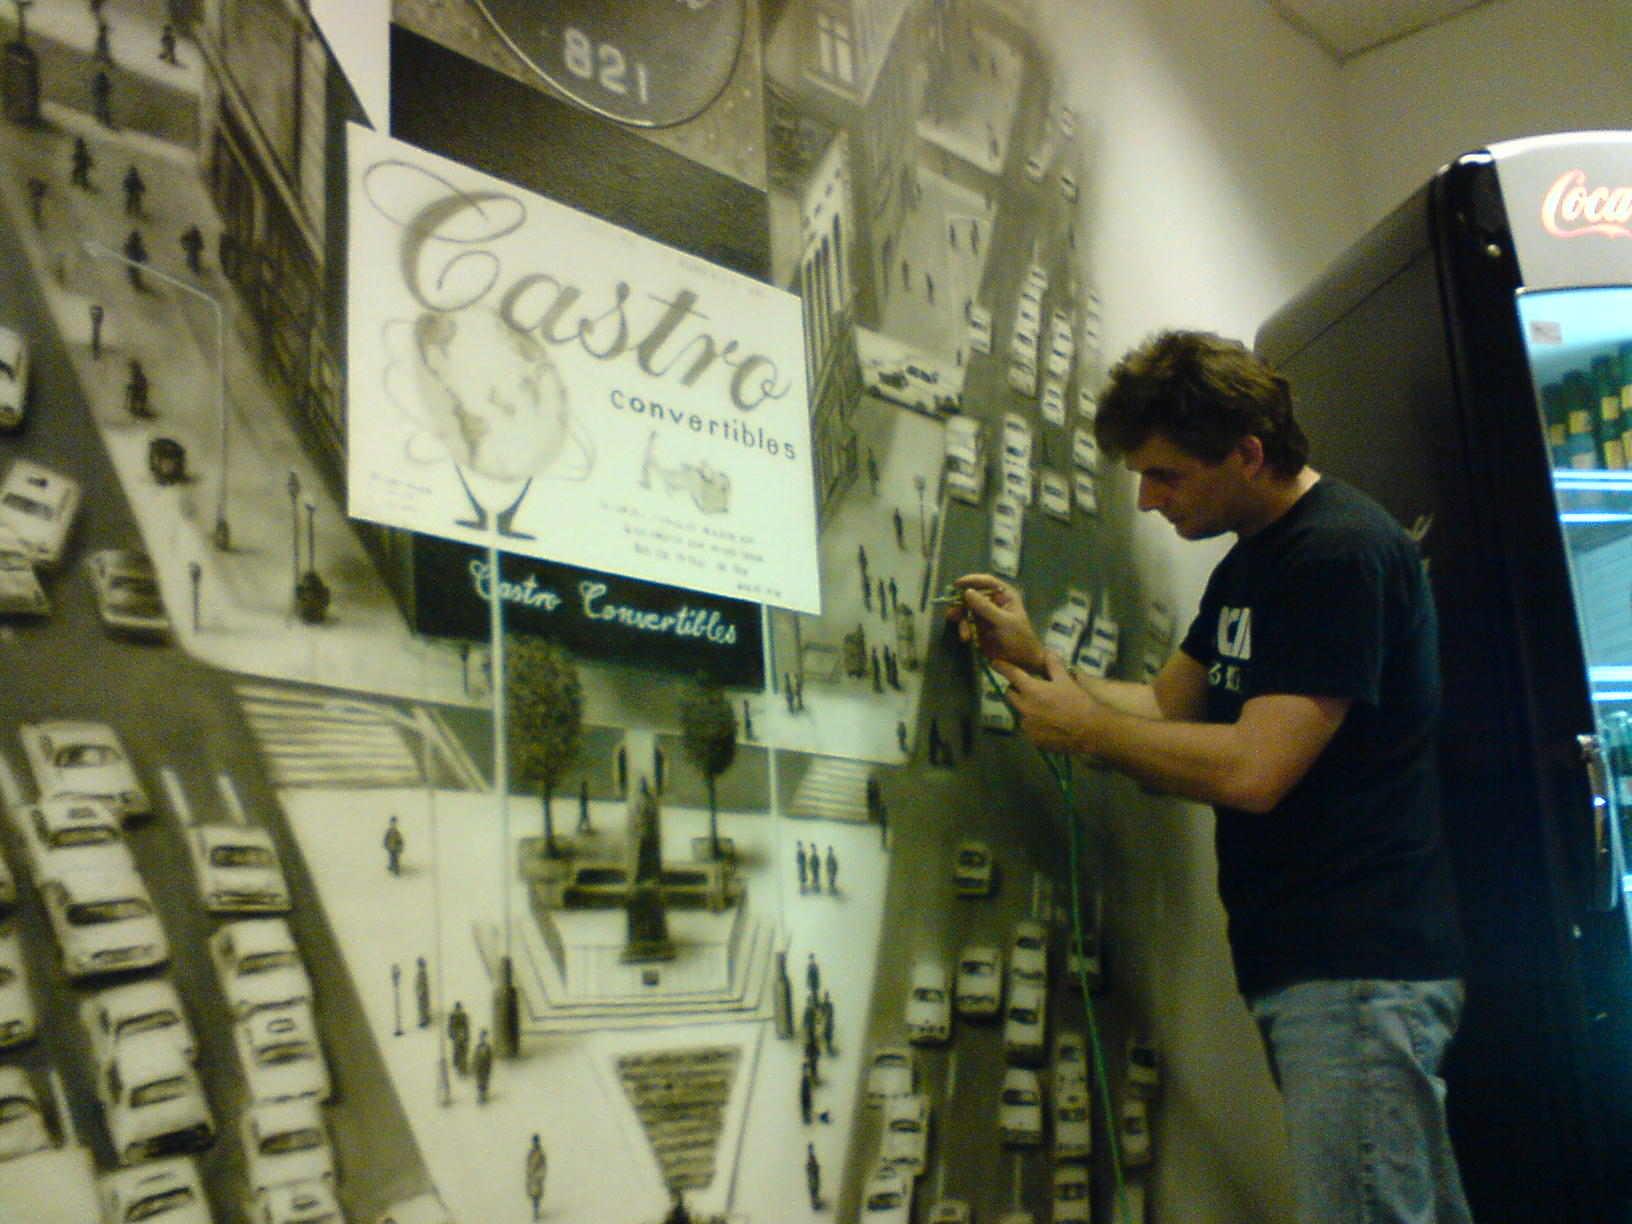 Airbrush Wandbemalung Meetingraum Coca Cola Werk Old New York City Making of - Arbeiten mit Torsten Rachu - Top-Airbrush